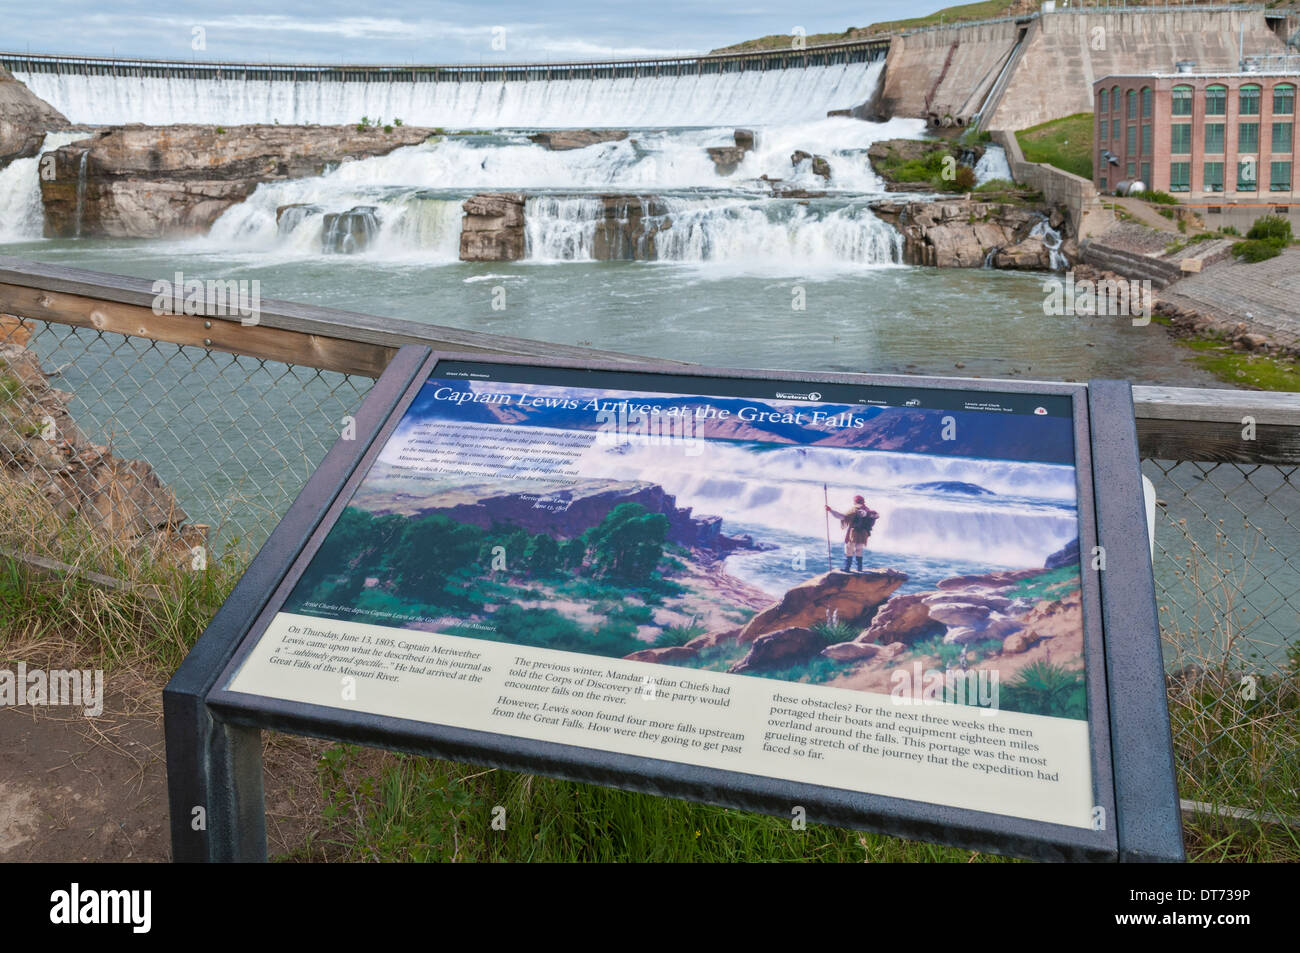 Montana, Great Falls, Ryan Dam, hydroelectric dam on the Missouri River, completed 1915, Lewis & Ckark interpretive sign - Stock Image